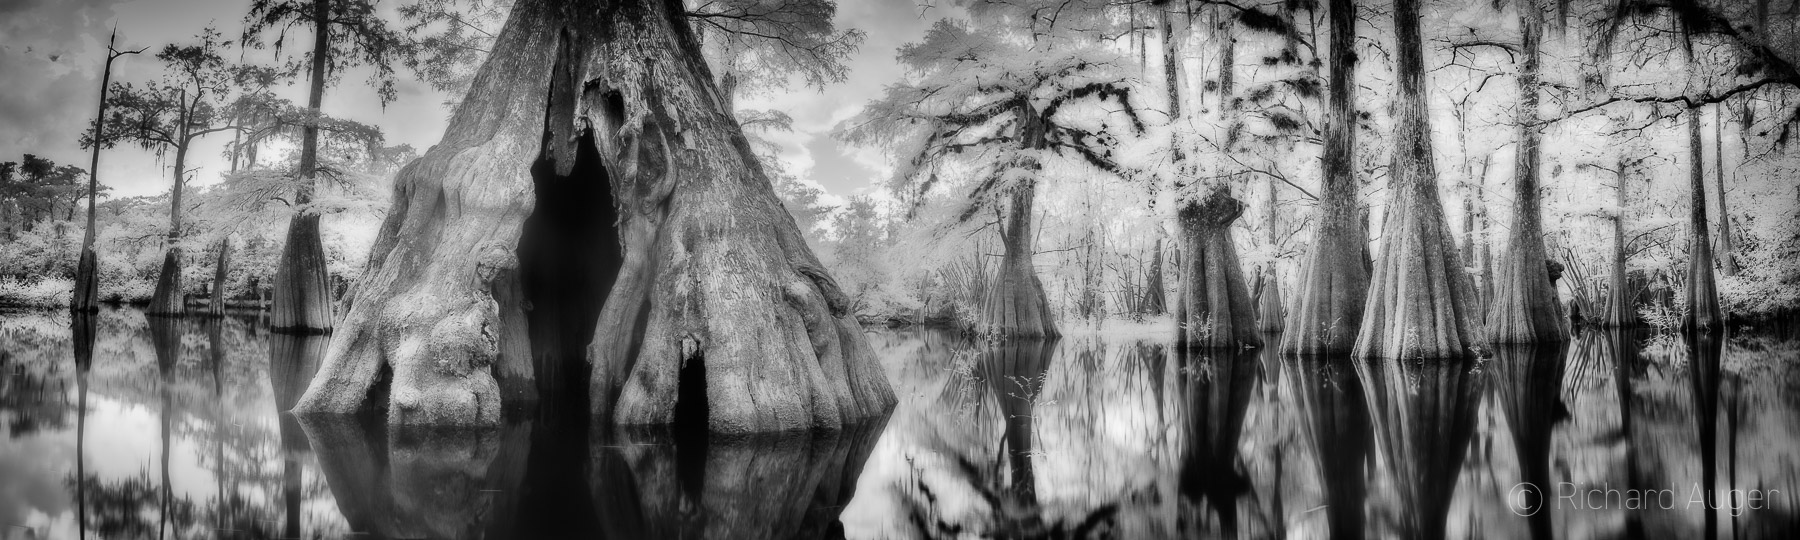 Suwannee River, Florida, Giant Cypress Trees, Water, Swamp, Sepia, Monochrome, Richard Auger, black and white, panorama